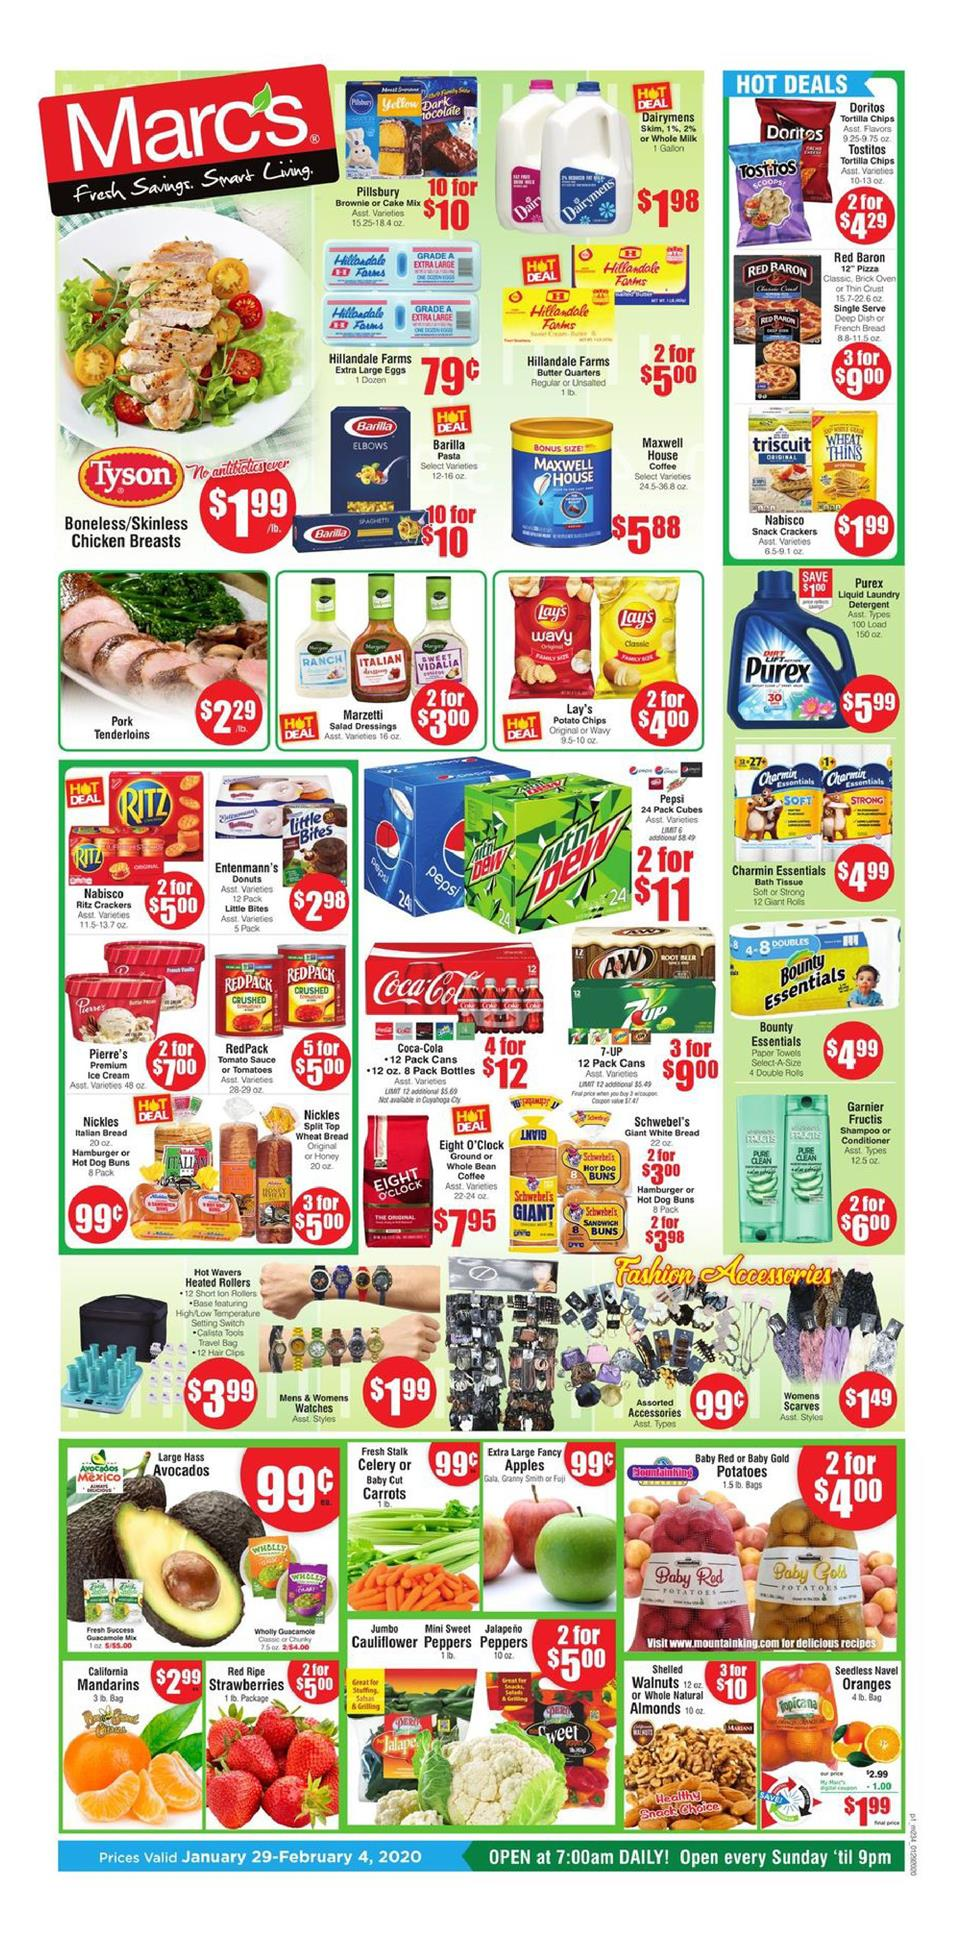 marcs early february weekly ad valid from jan 29 feb 4 2020